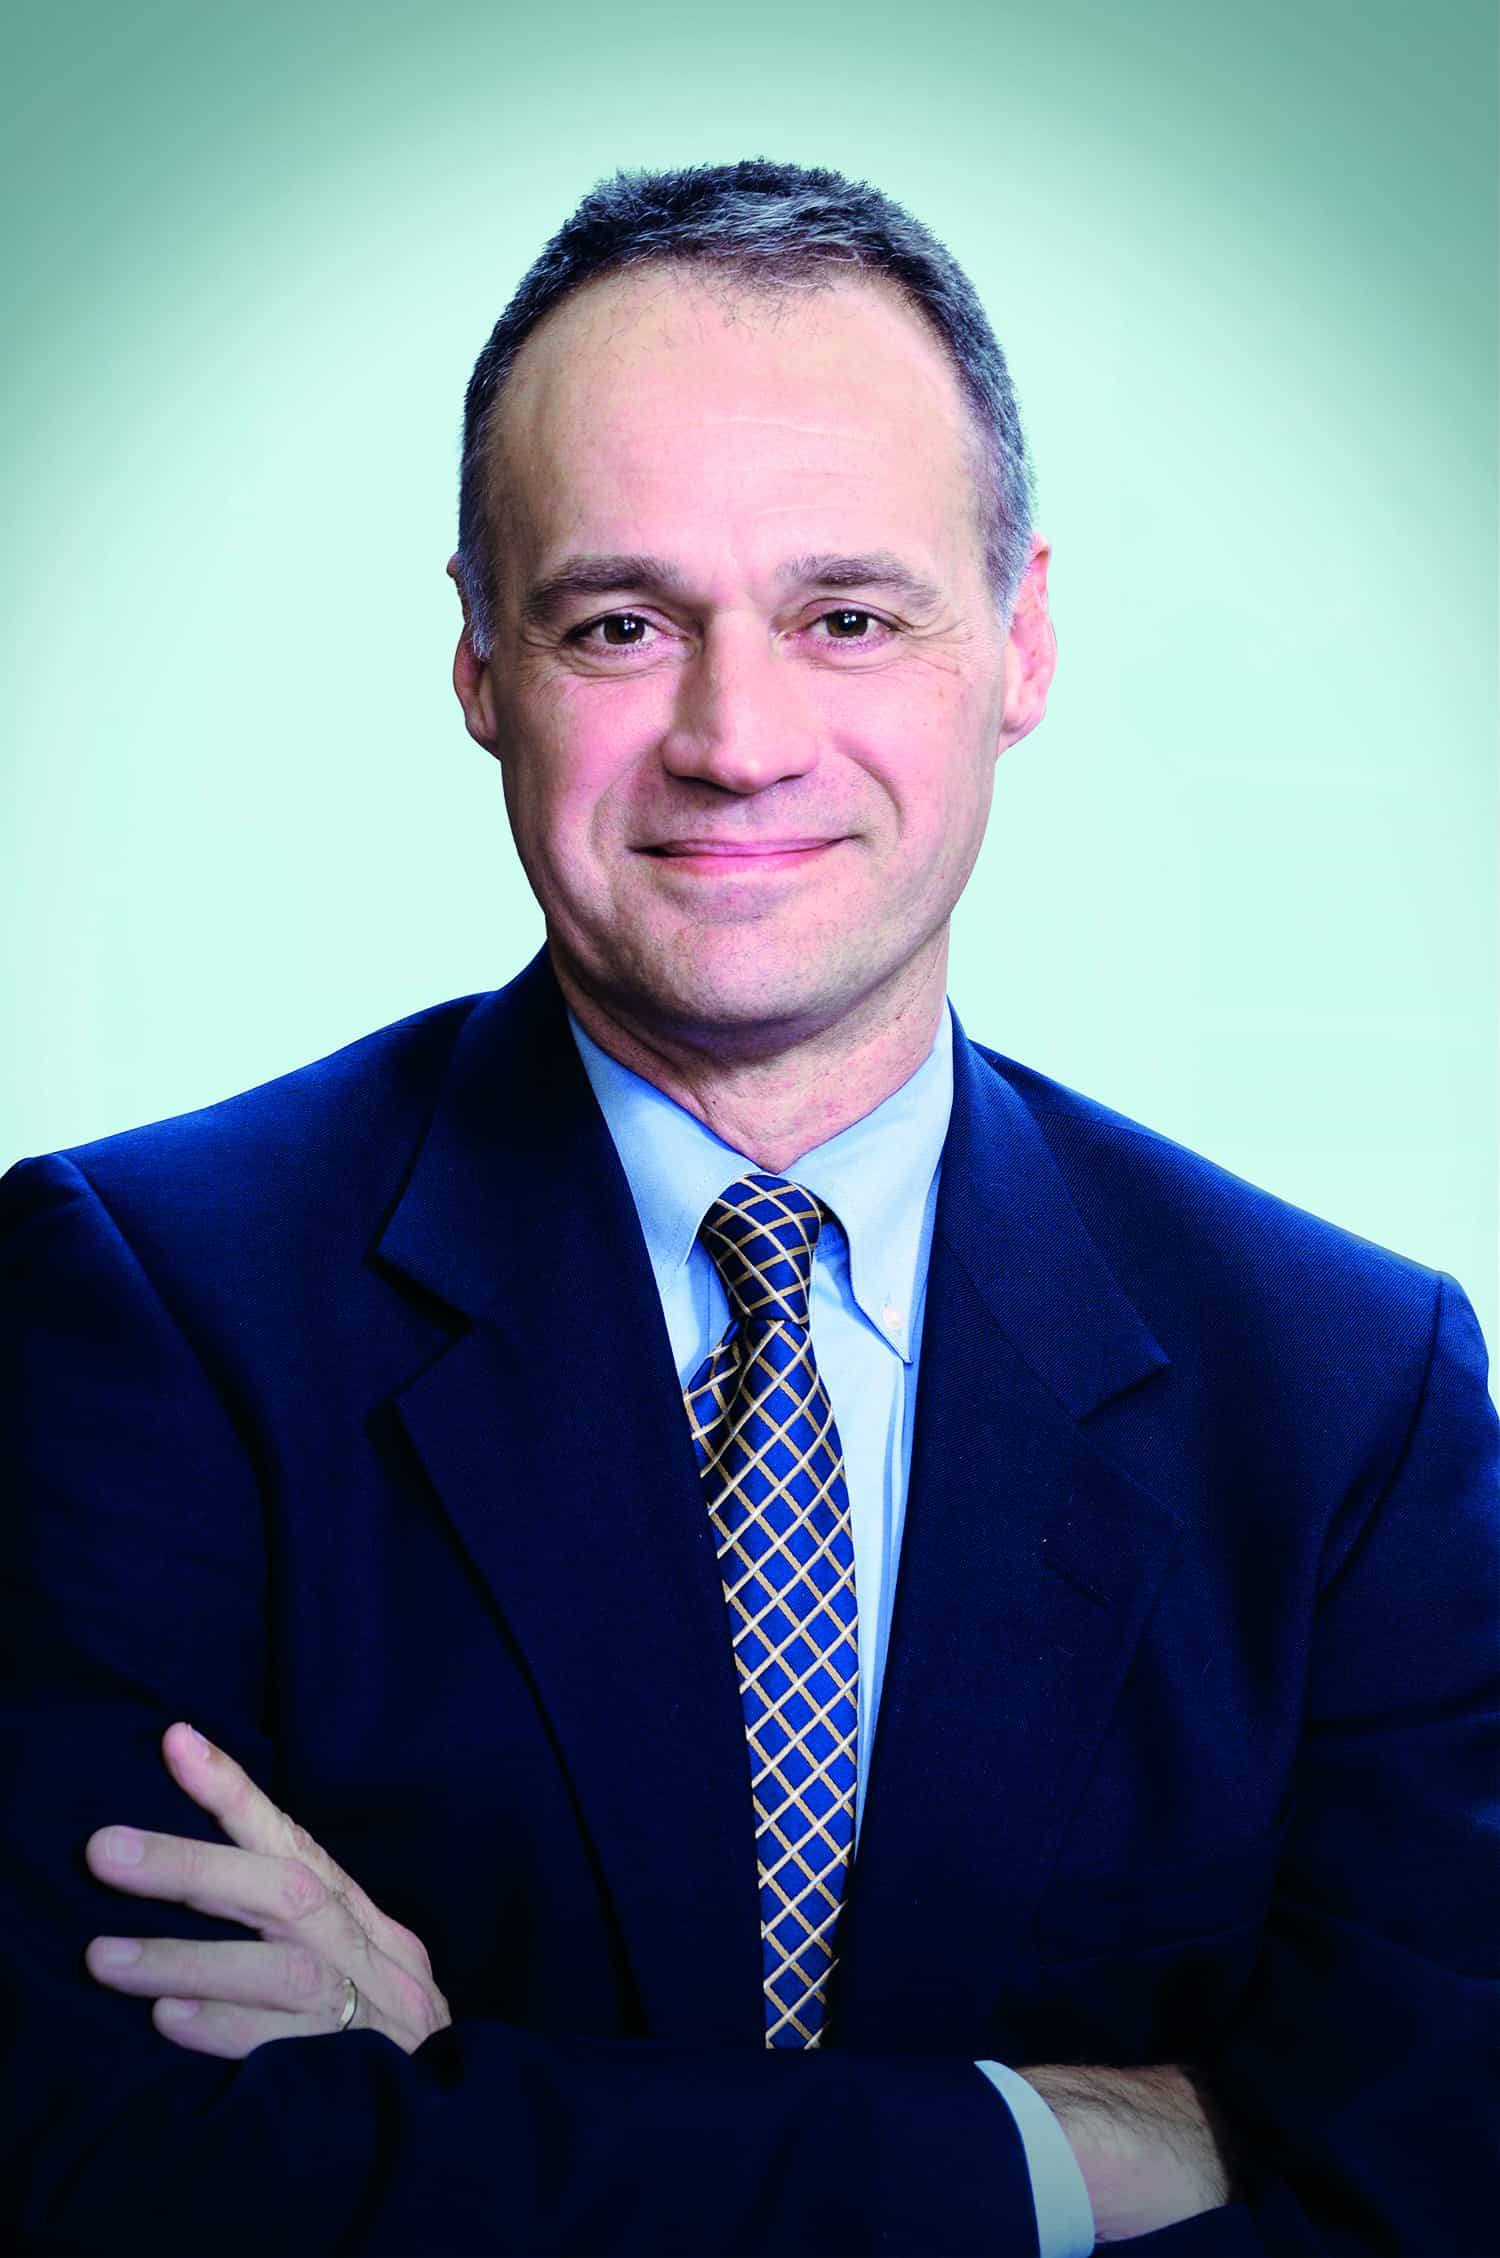 Formal portrait of Michael Bishop MD, Professor of Medicine, Director, Hematopoietic Stem Cell Transplantation Program, Master Clinician, Bucksbaum Institute for Clinical Excellence. (Photo by David Christopher)